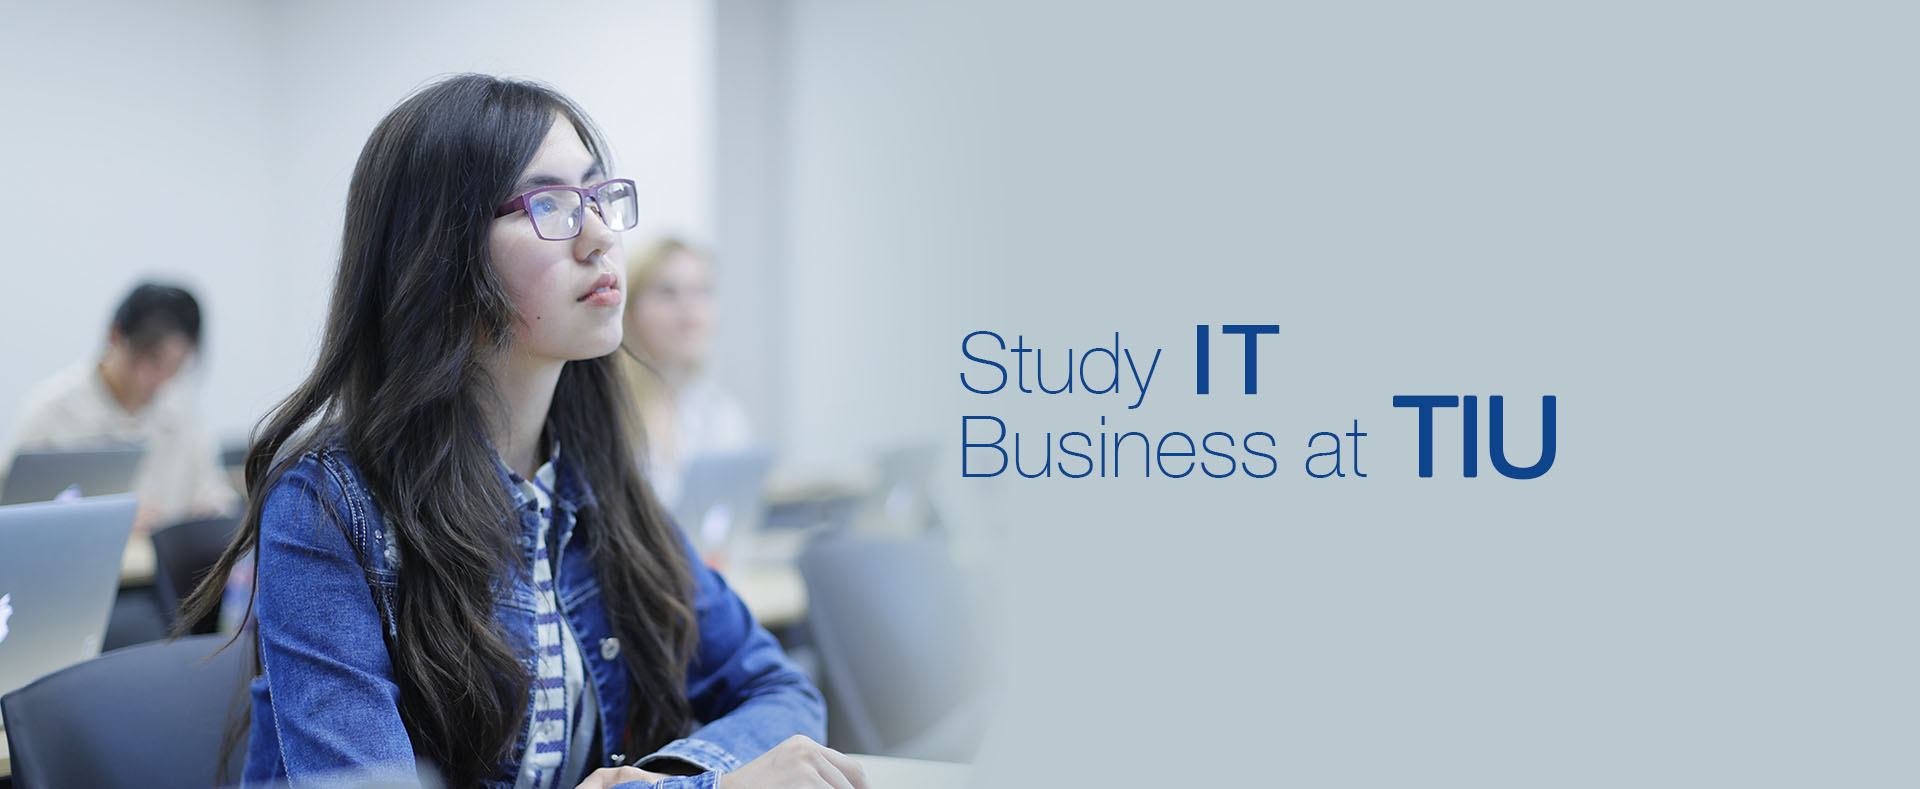 Study IT Business at TIU